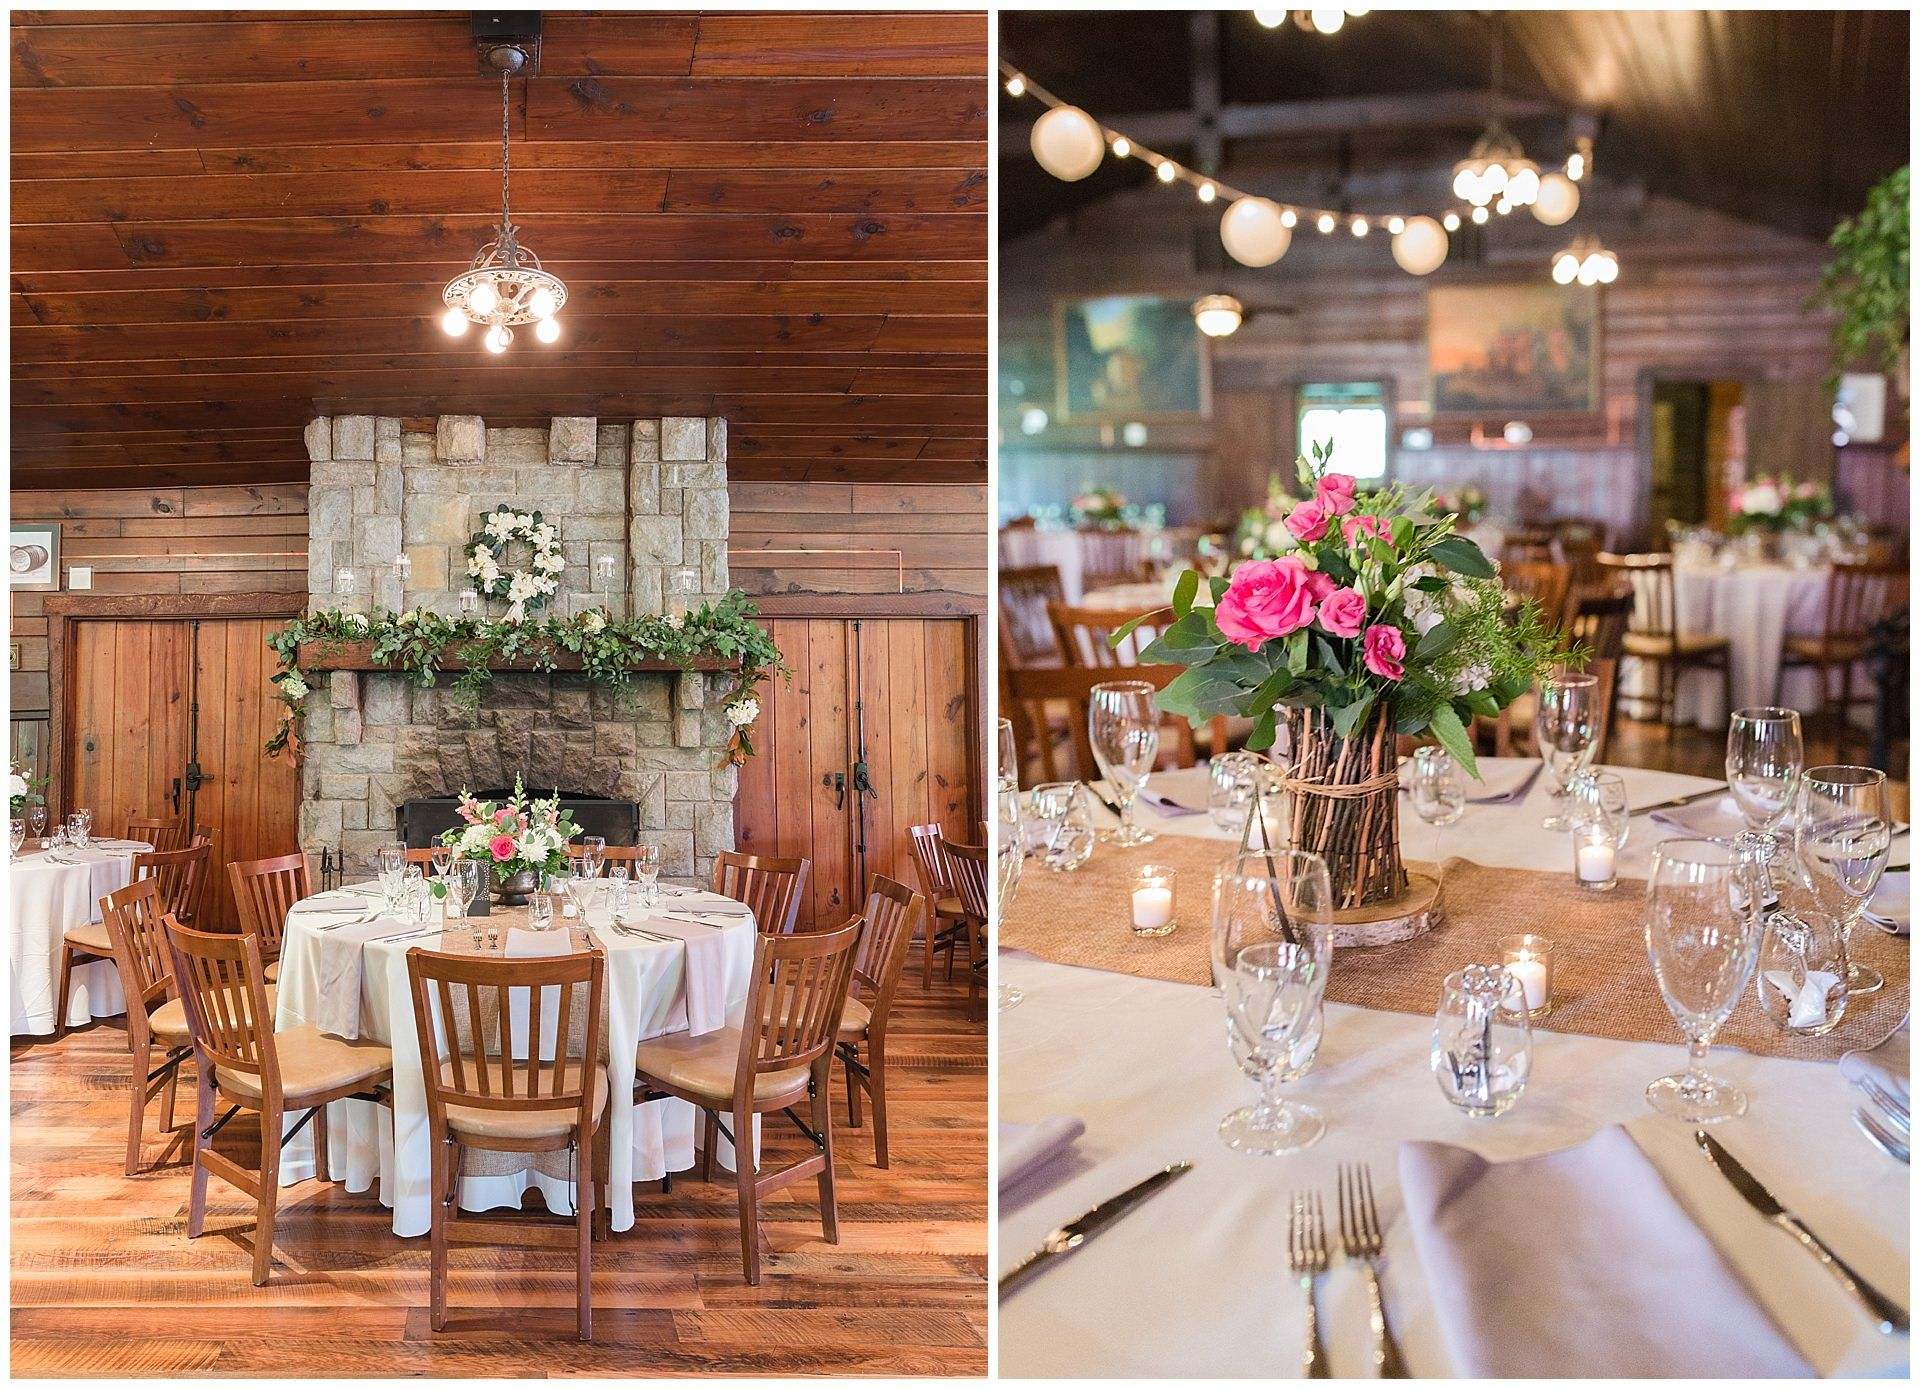 Kevin And Anna Photography Spring Wedding Reception At Buffalo Trace Distillery In Frankfort Ky Kentucky Indian